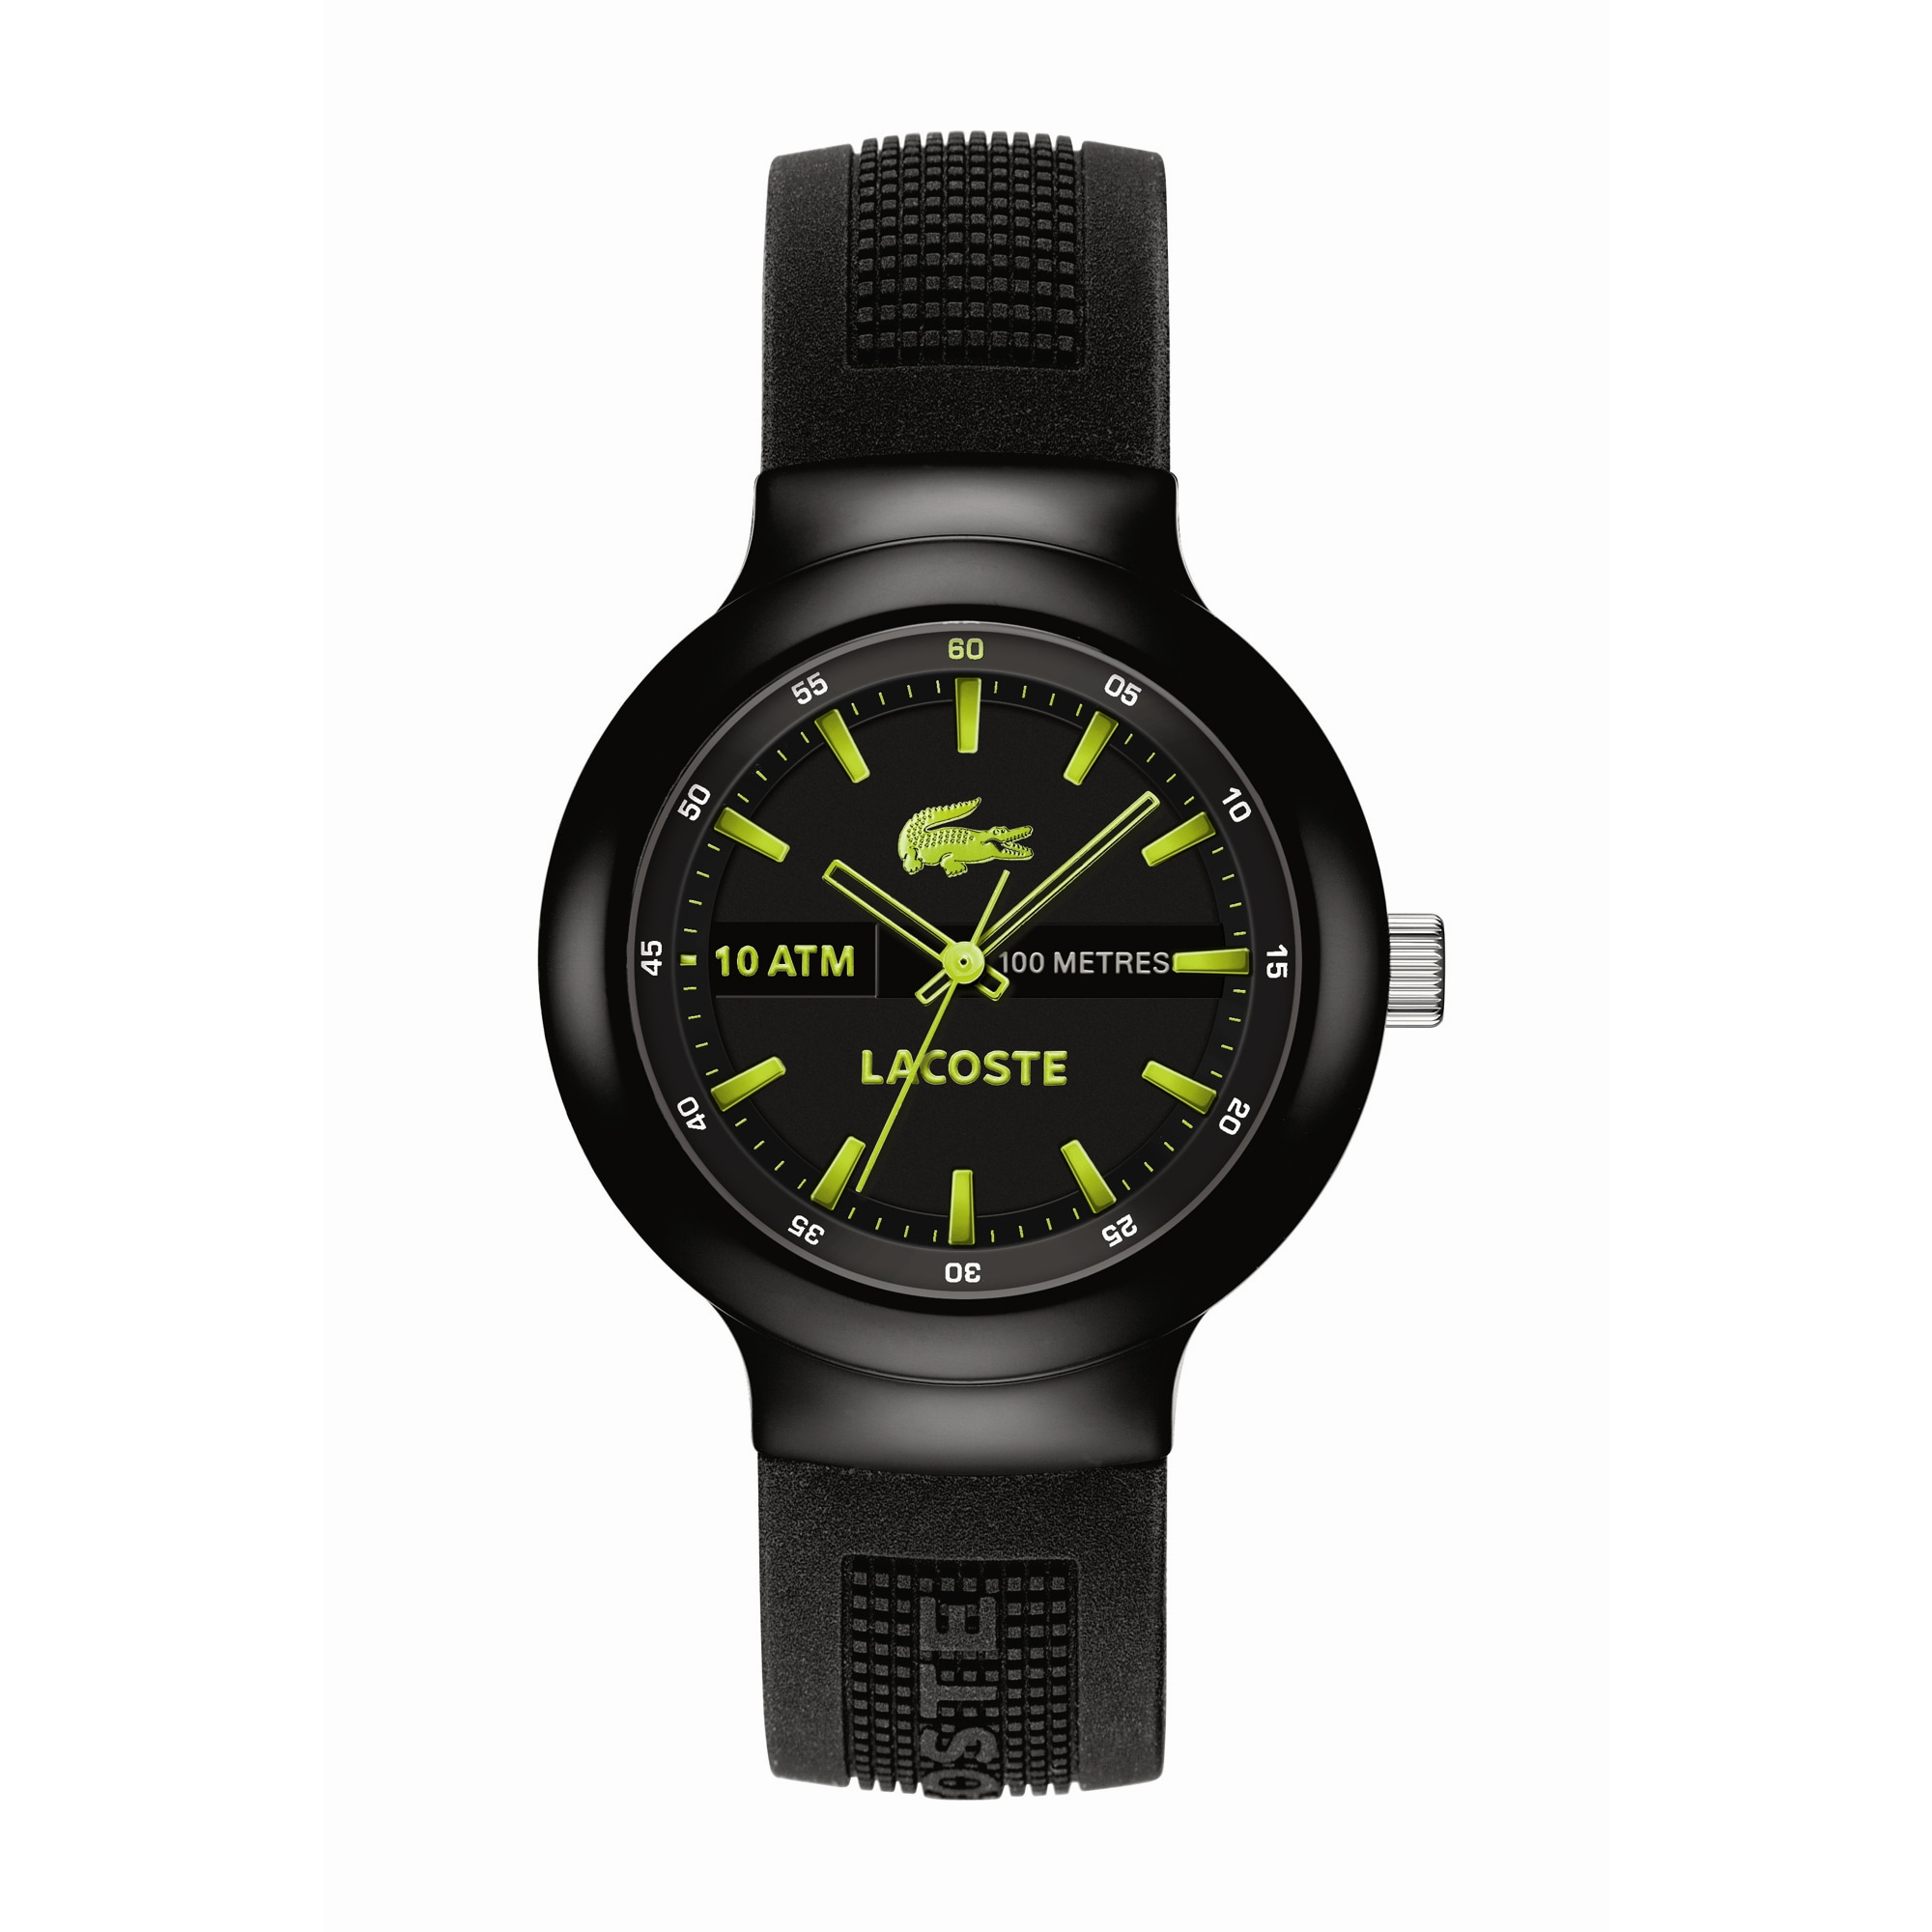 Borneo Watch